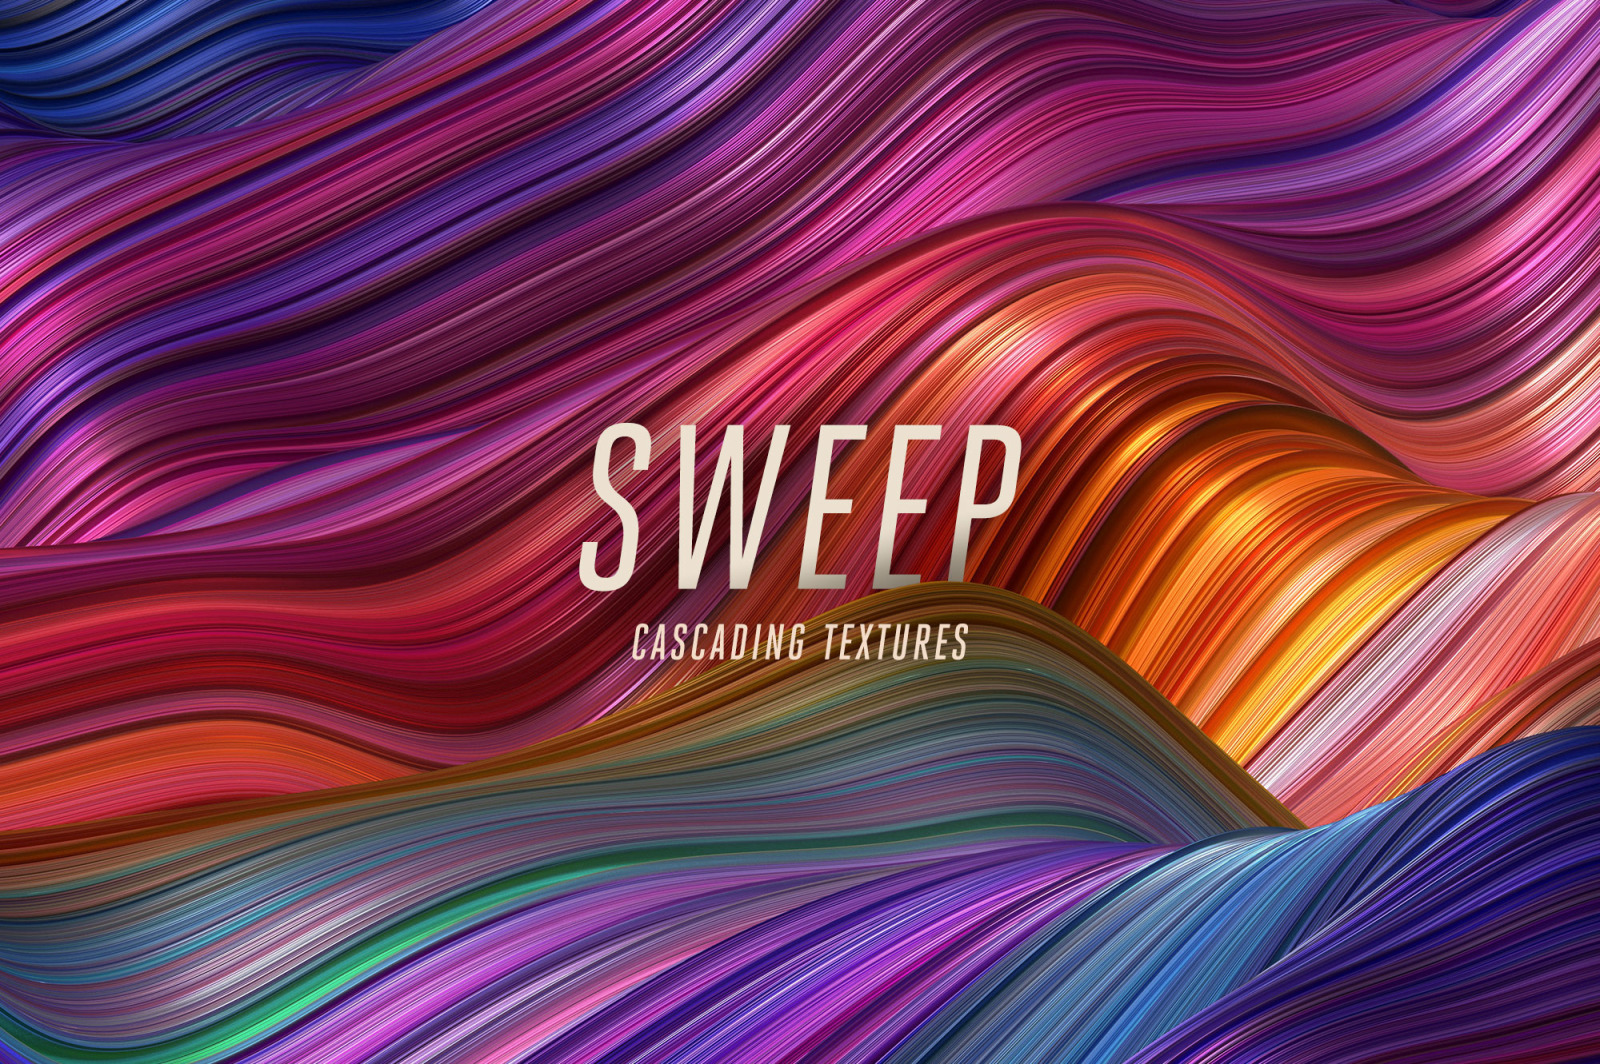 Sweep: Glossy Cascading Textures